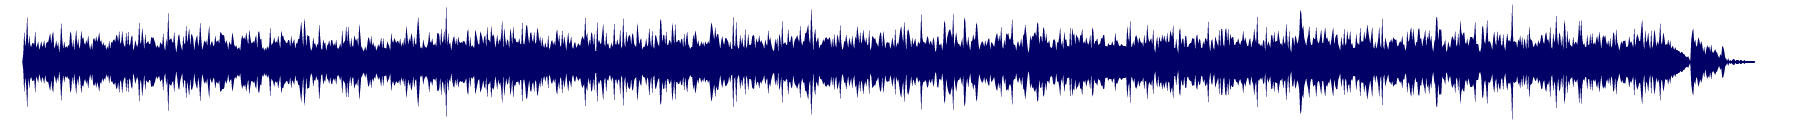 waveform of track #68269